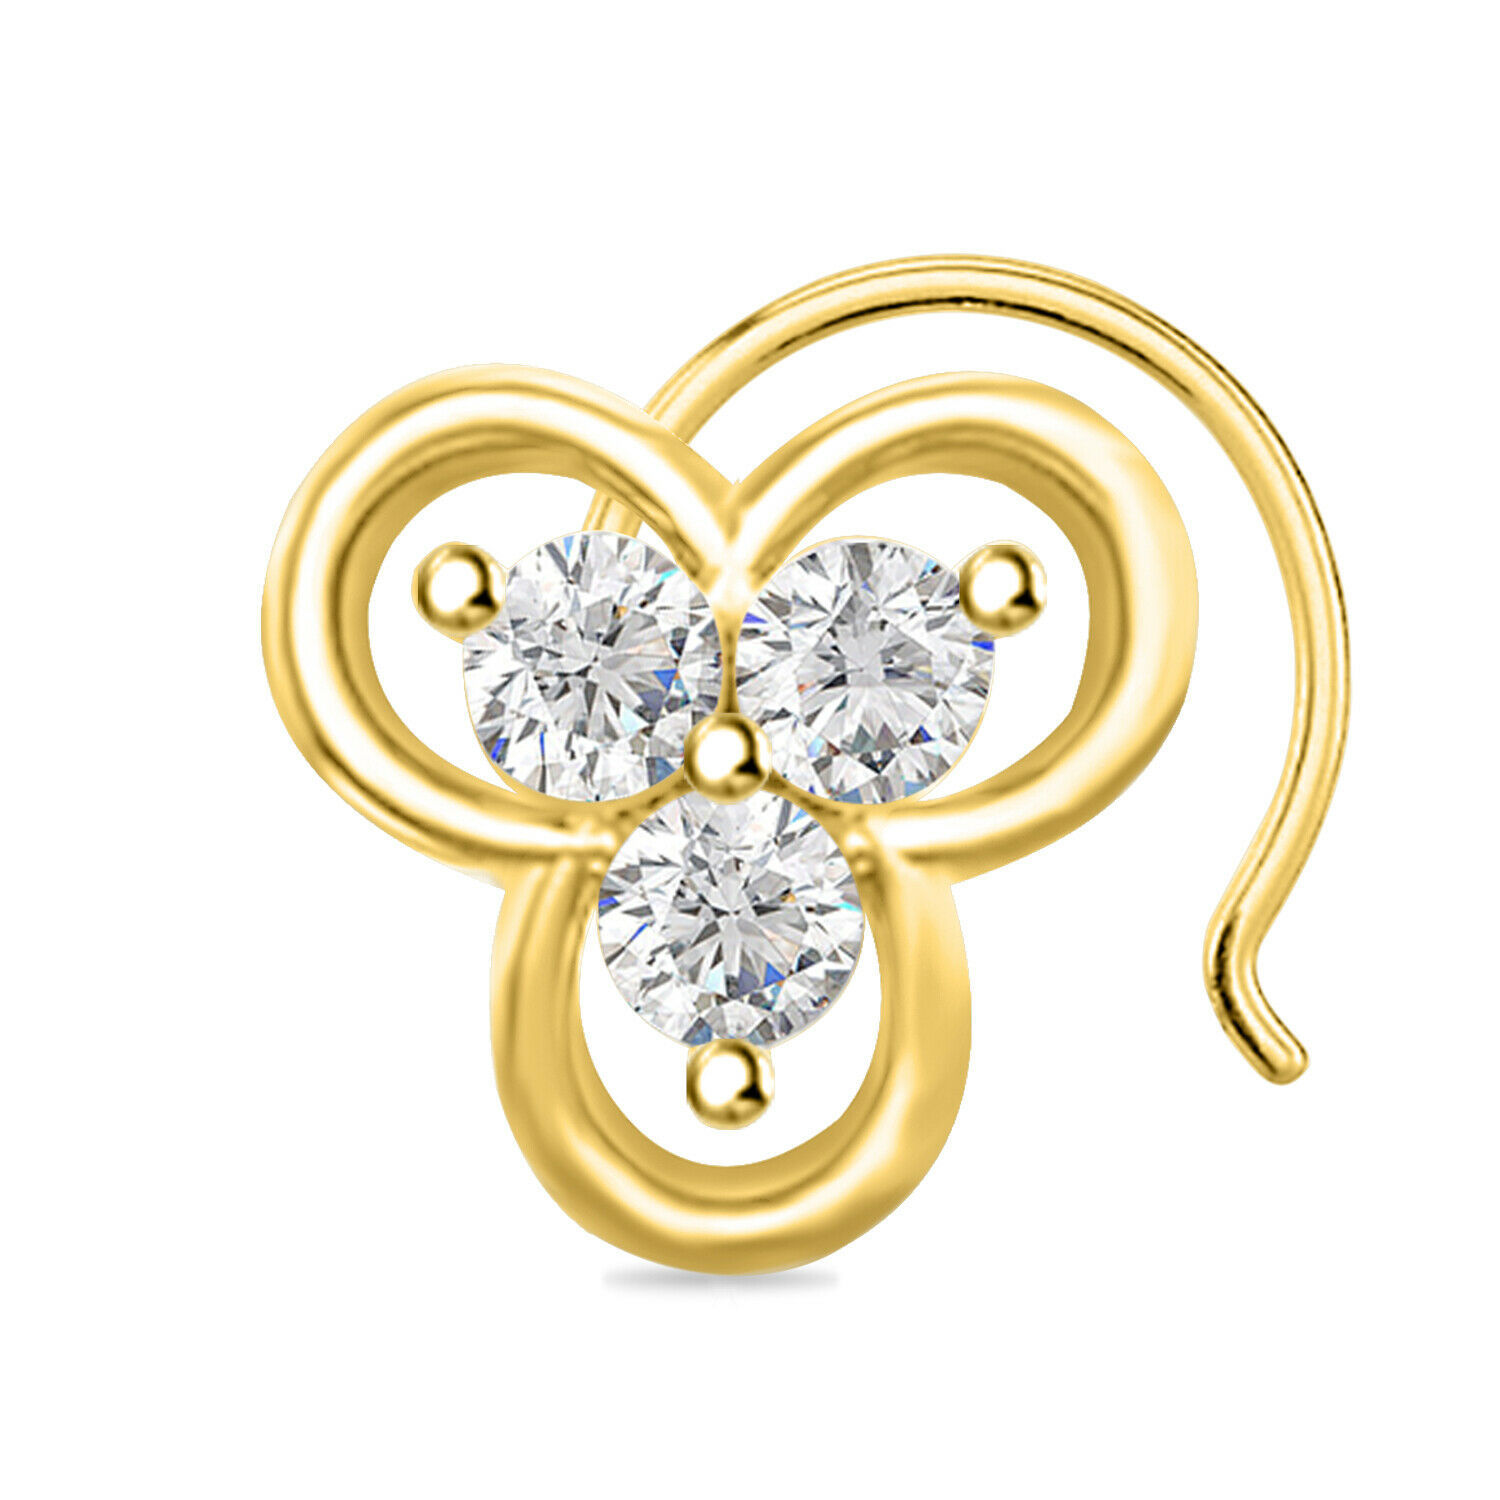 Primary image for 0.84 ct round CUt Diamond Three Stone Mouse shape Nose Pin 14k Yellow Gold Over